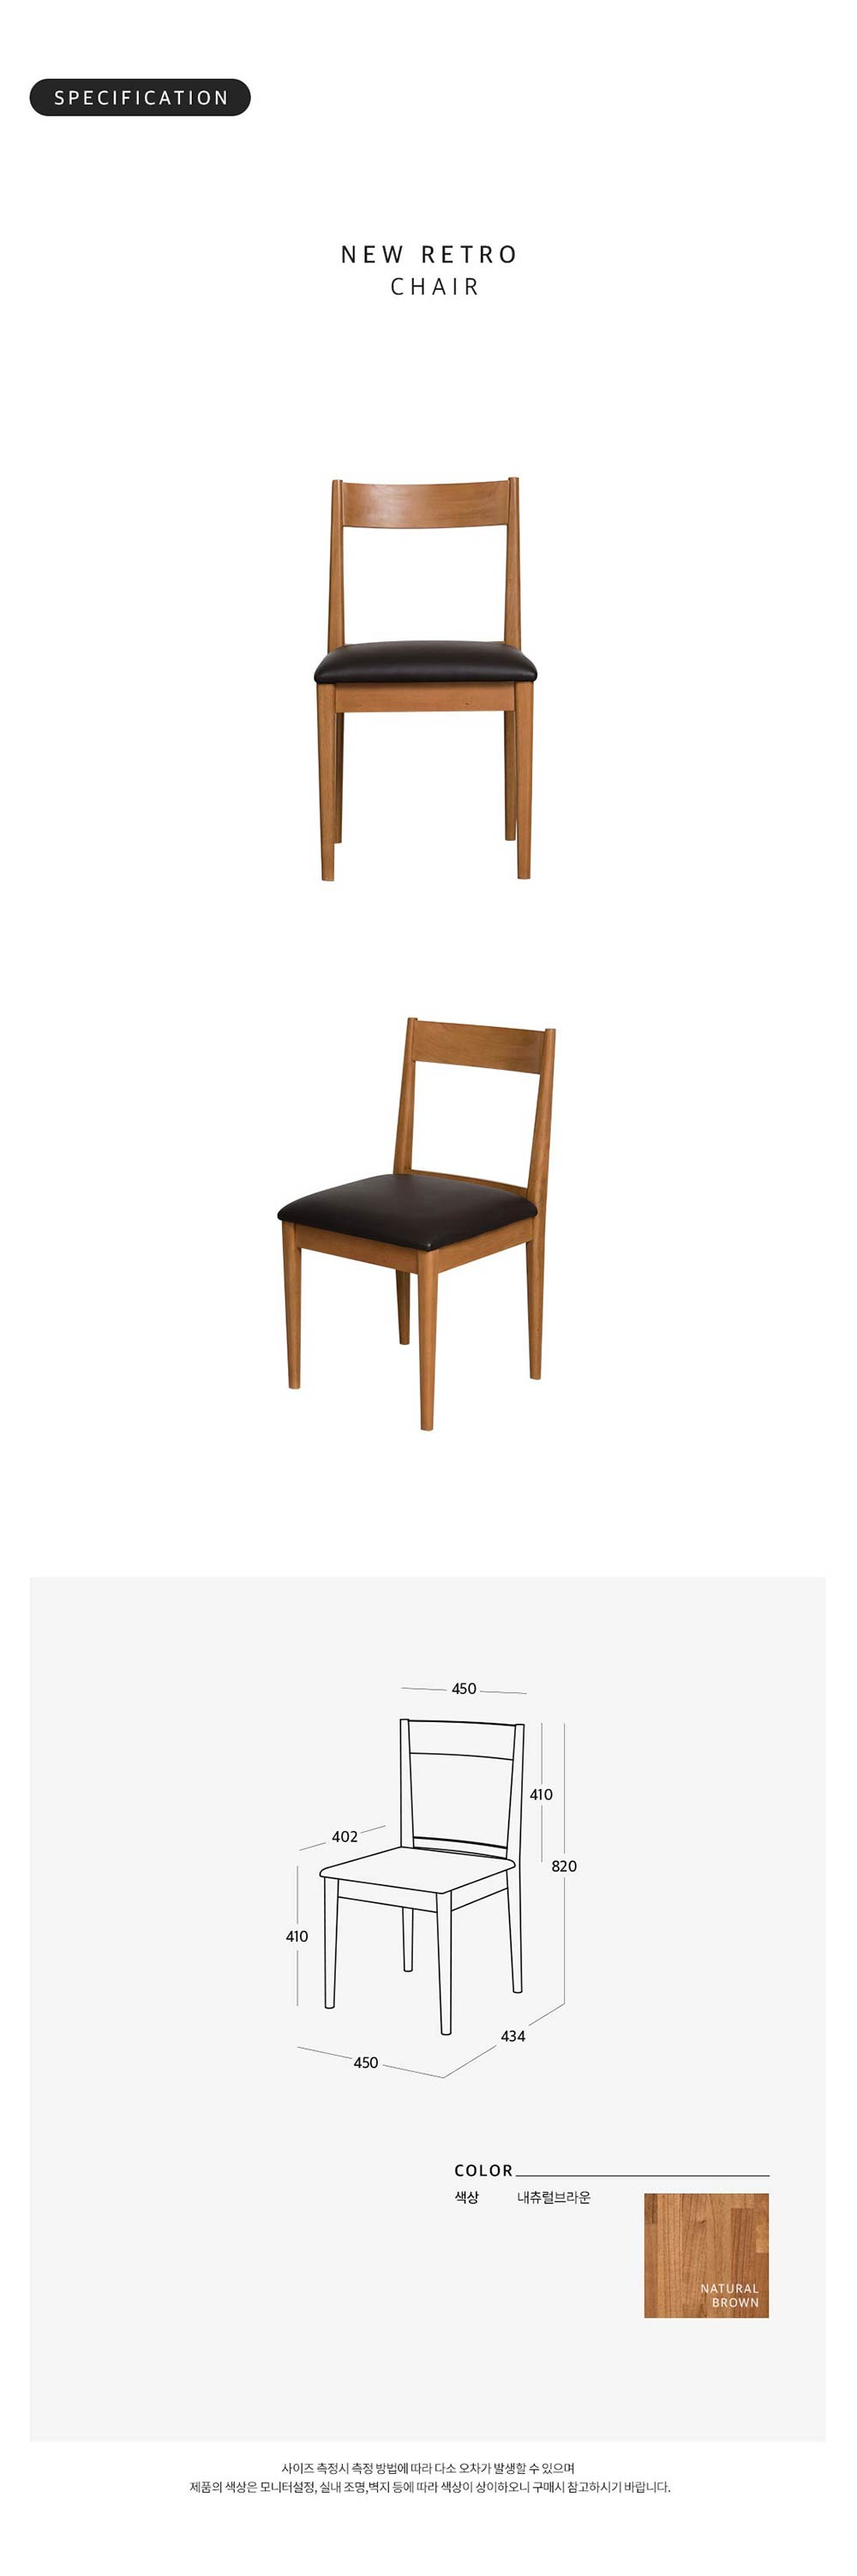 New_Retro_Dining_Chair_Singapore_Furniture_Online_Specification_1_by_born_in_colour